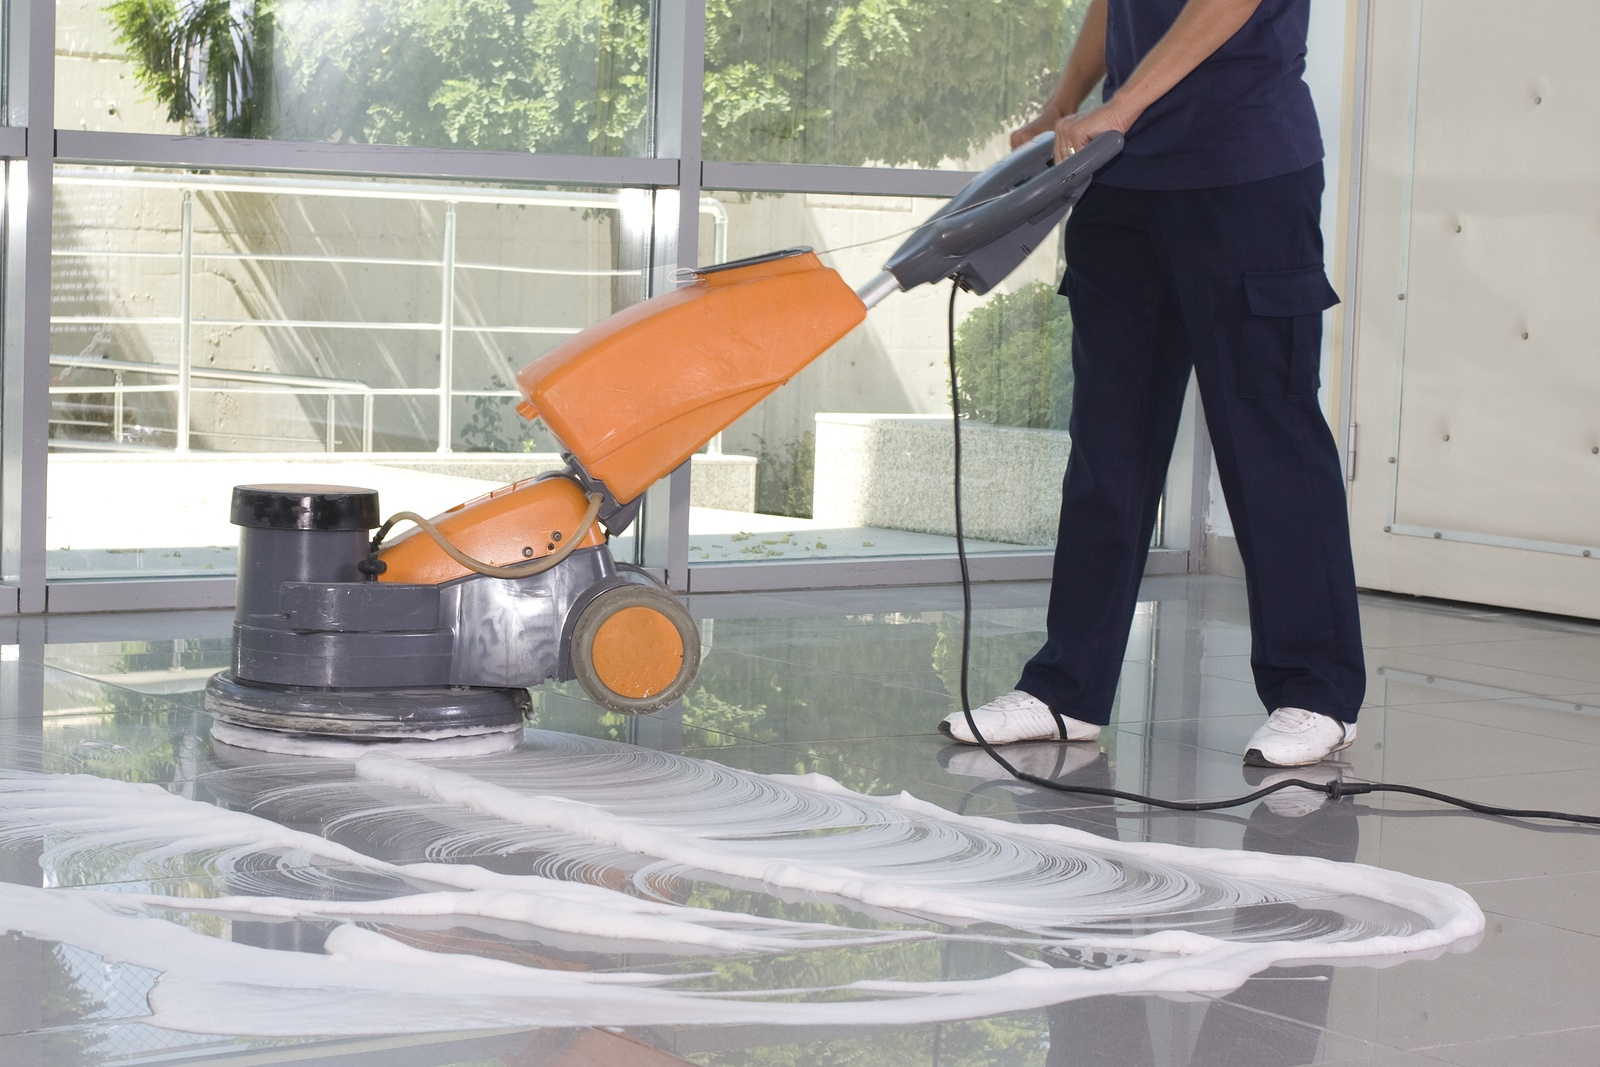 Reoccurring Revenue with this Floor Care Business